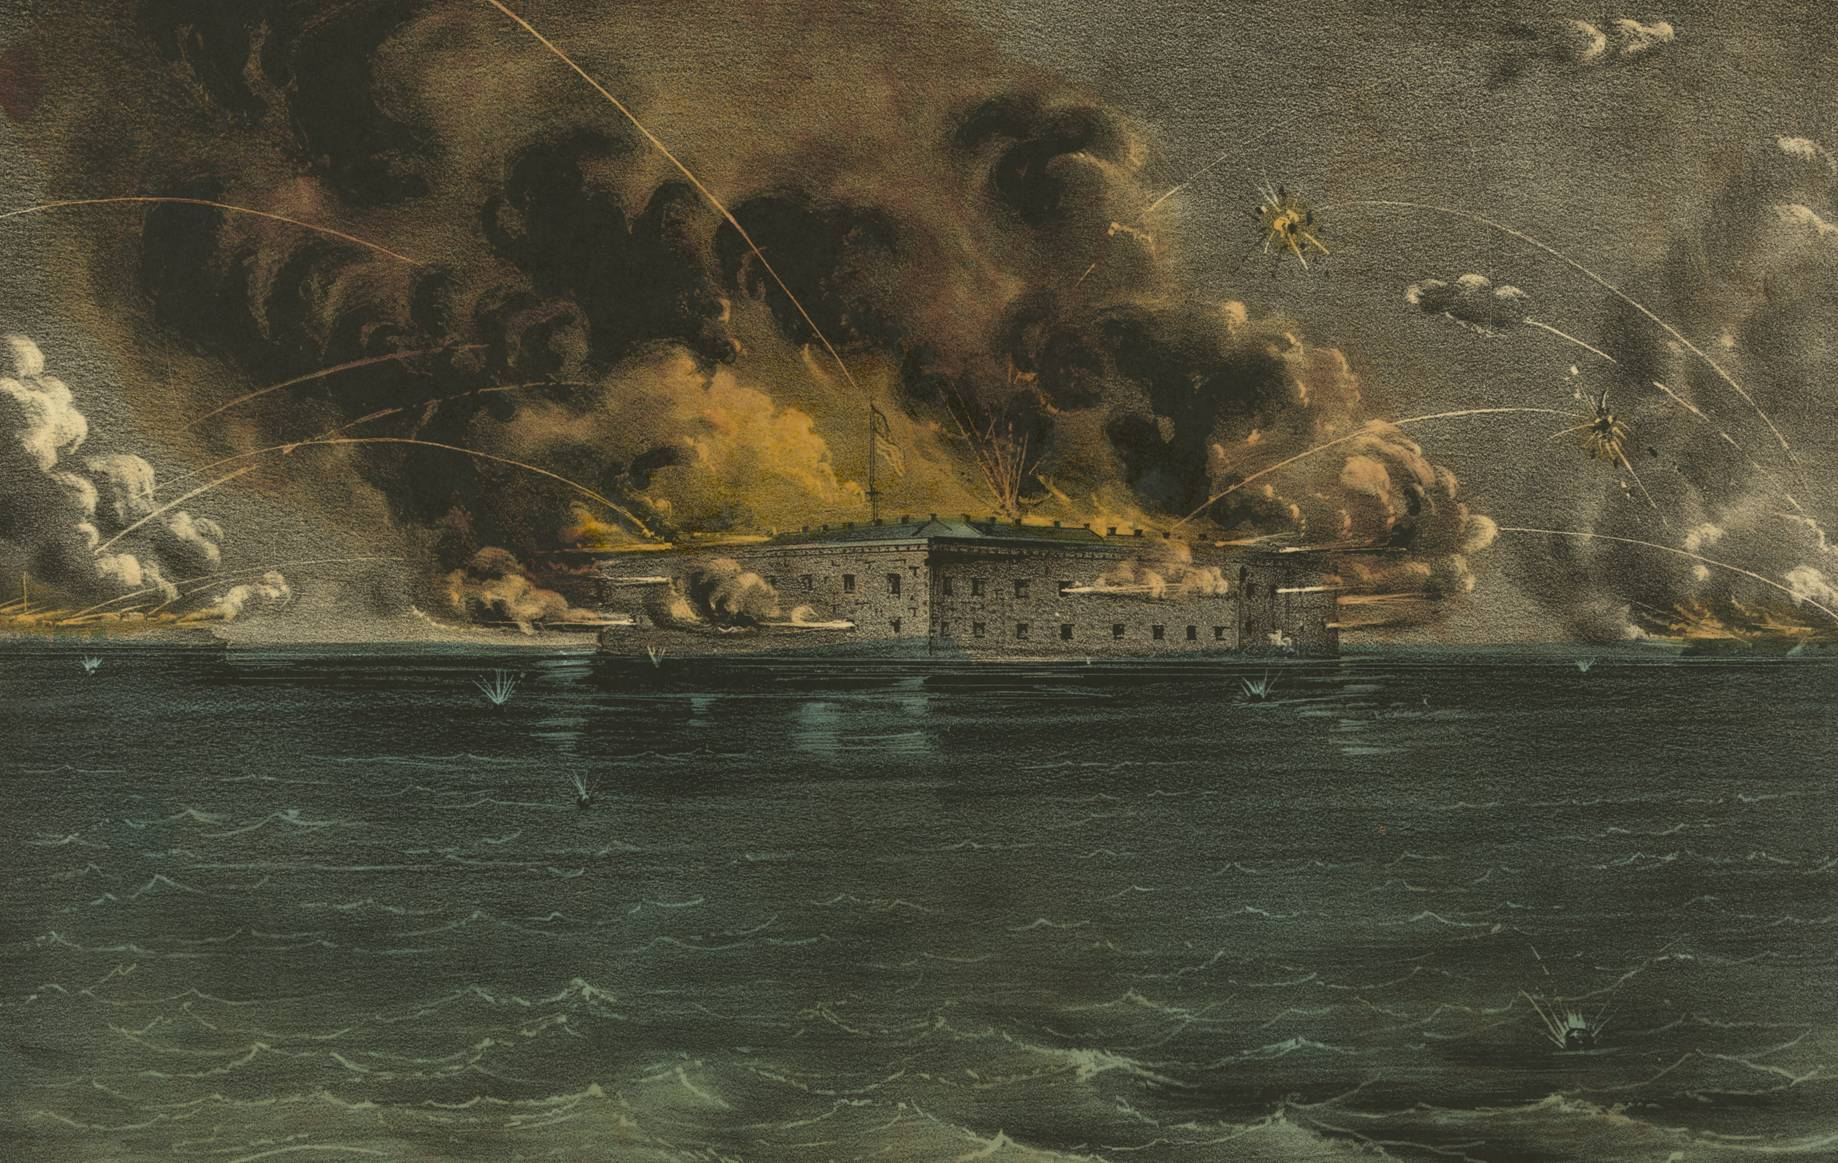 Battle of Fort Sumter by Currier and Ives